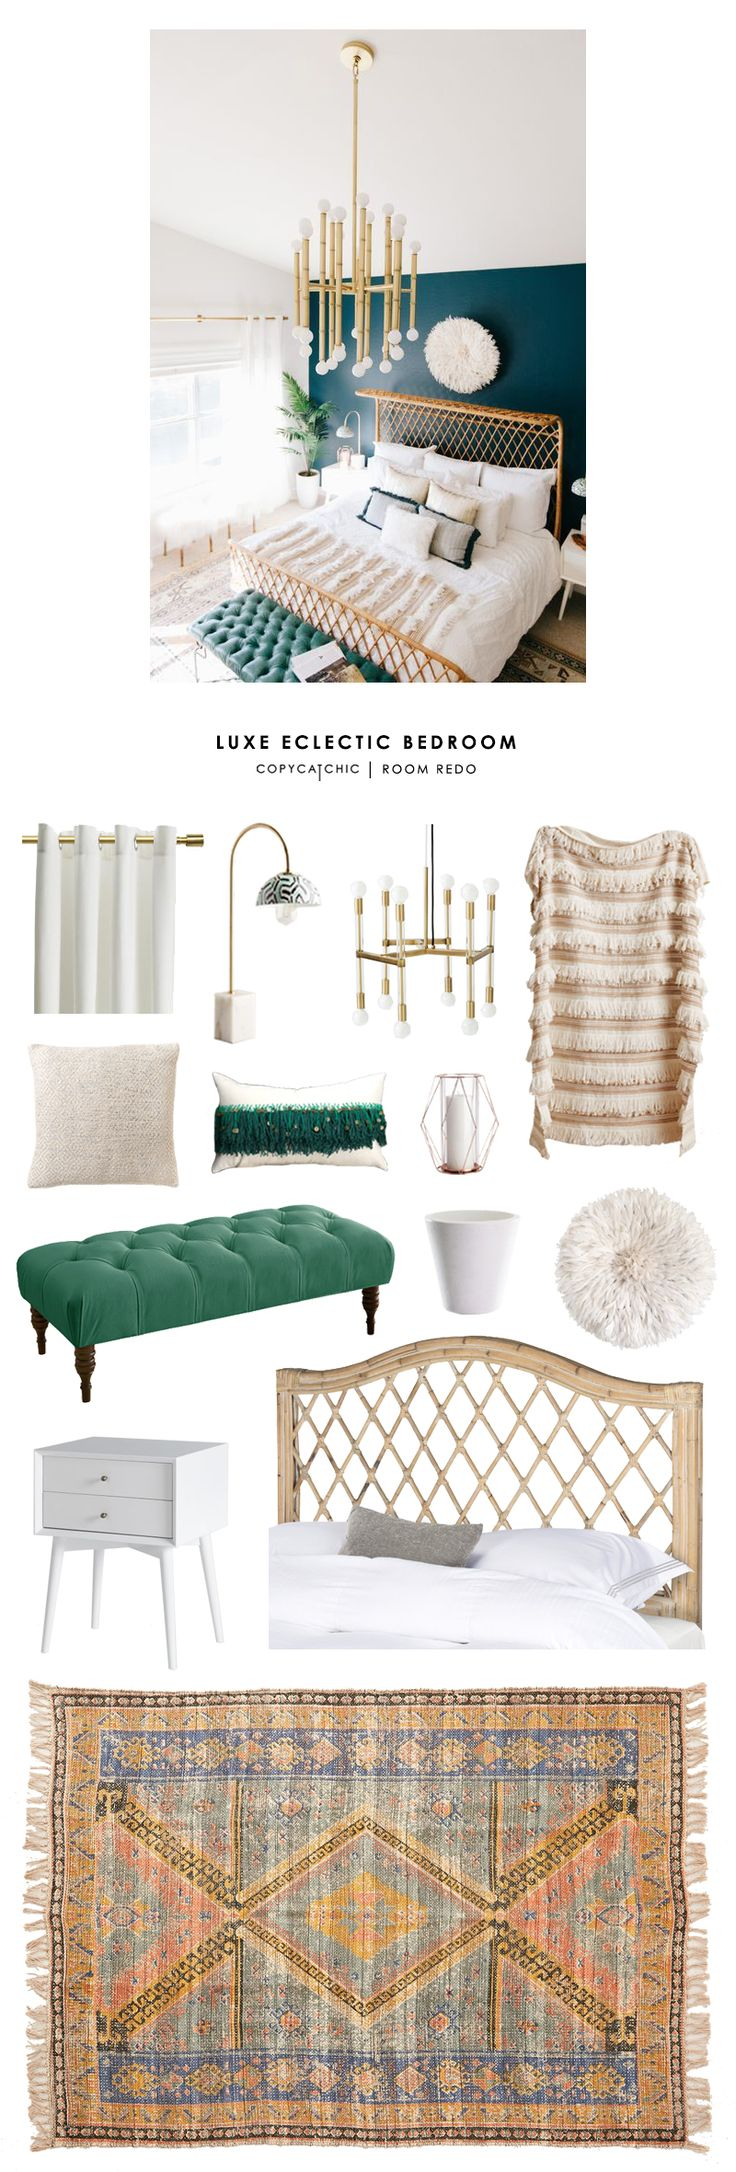 Copy Cat Chic Room Redo | Luxe Eclectic Bedroom                                                                                                                                                                                 More